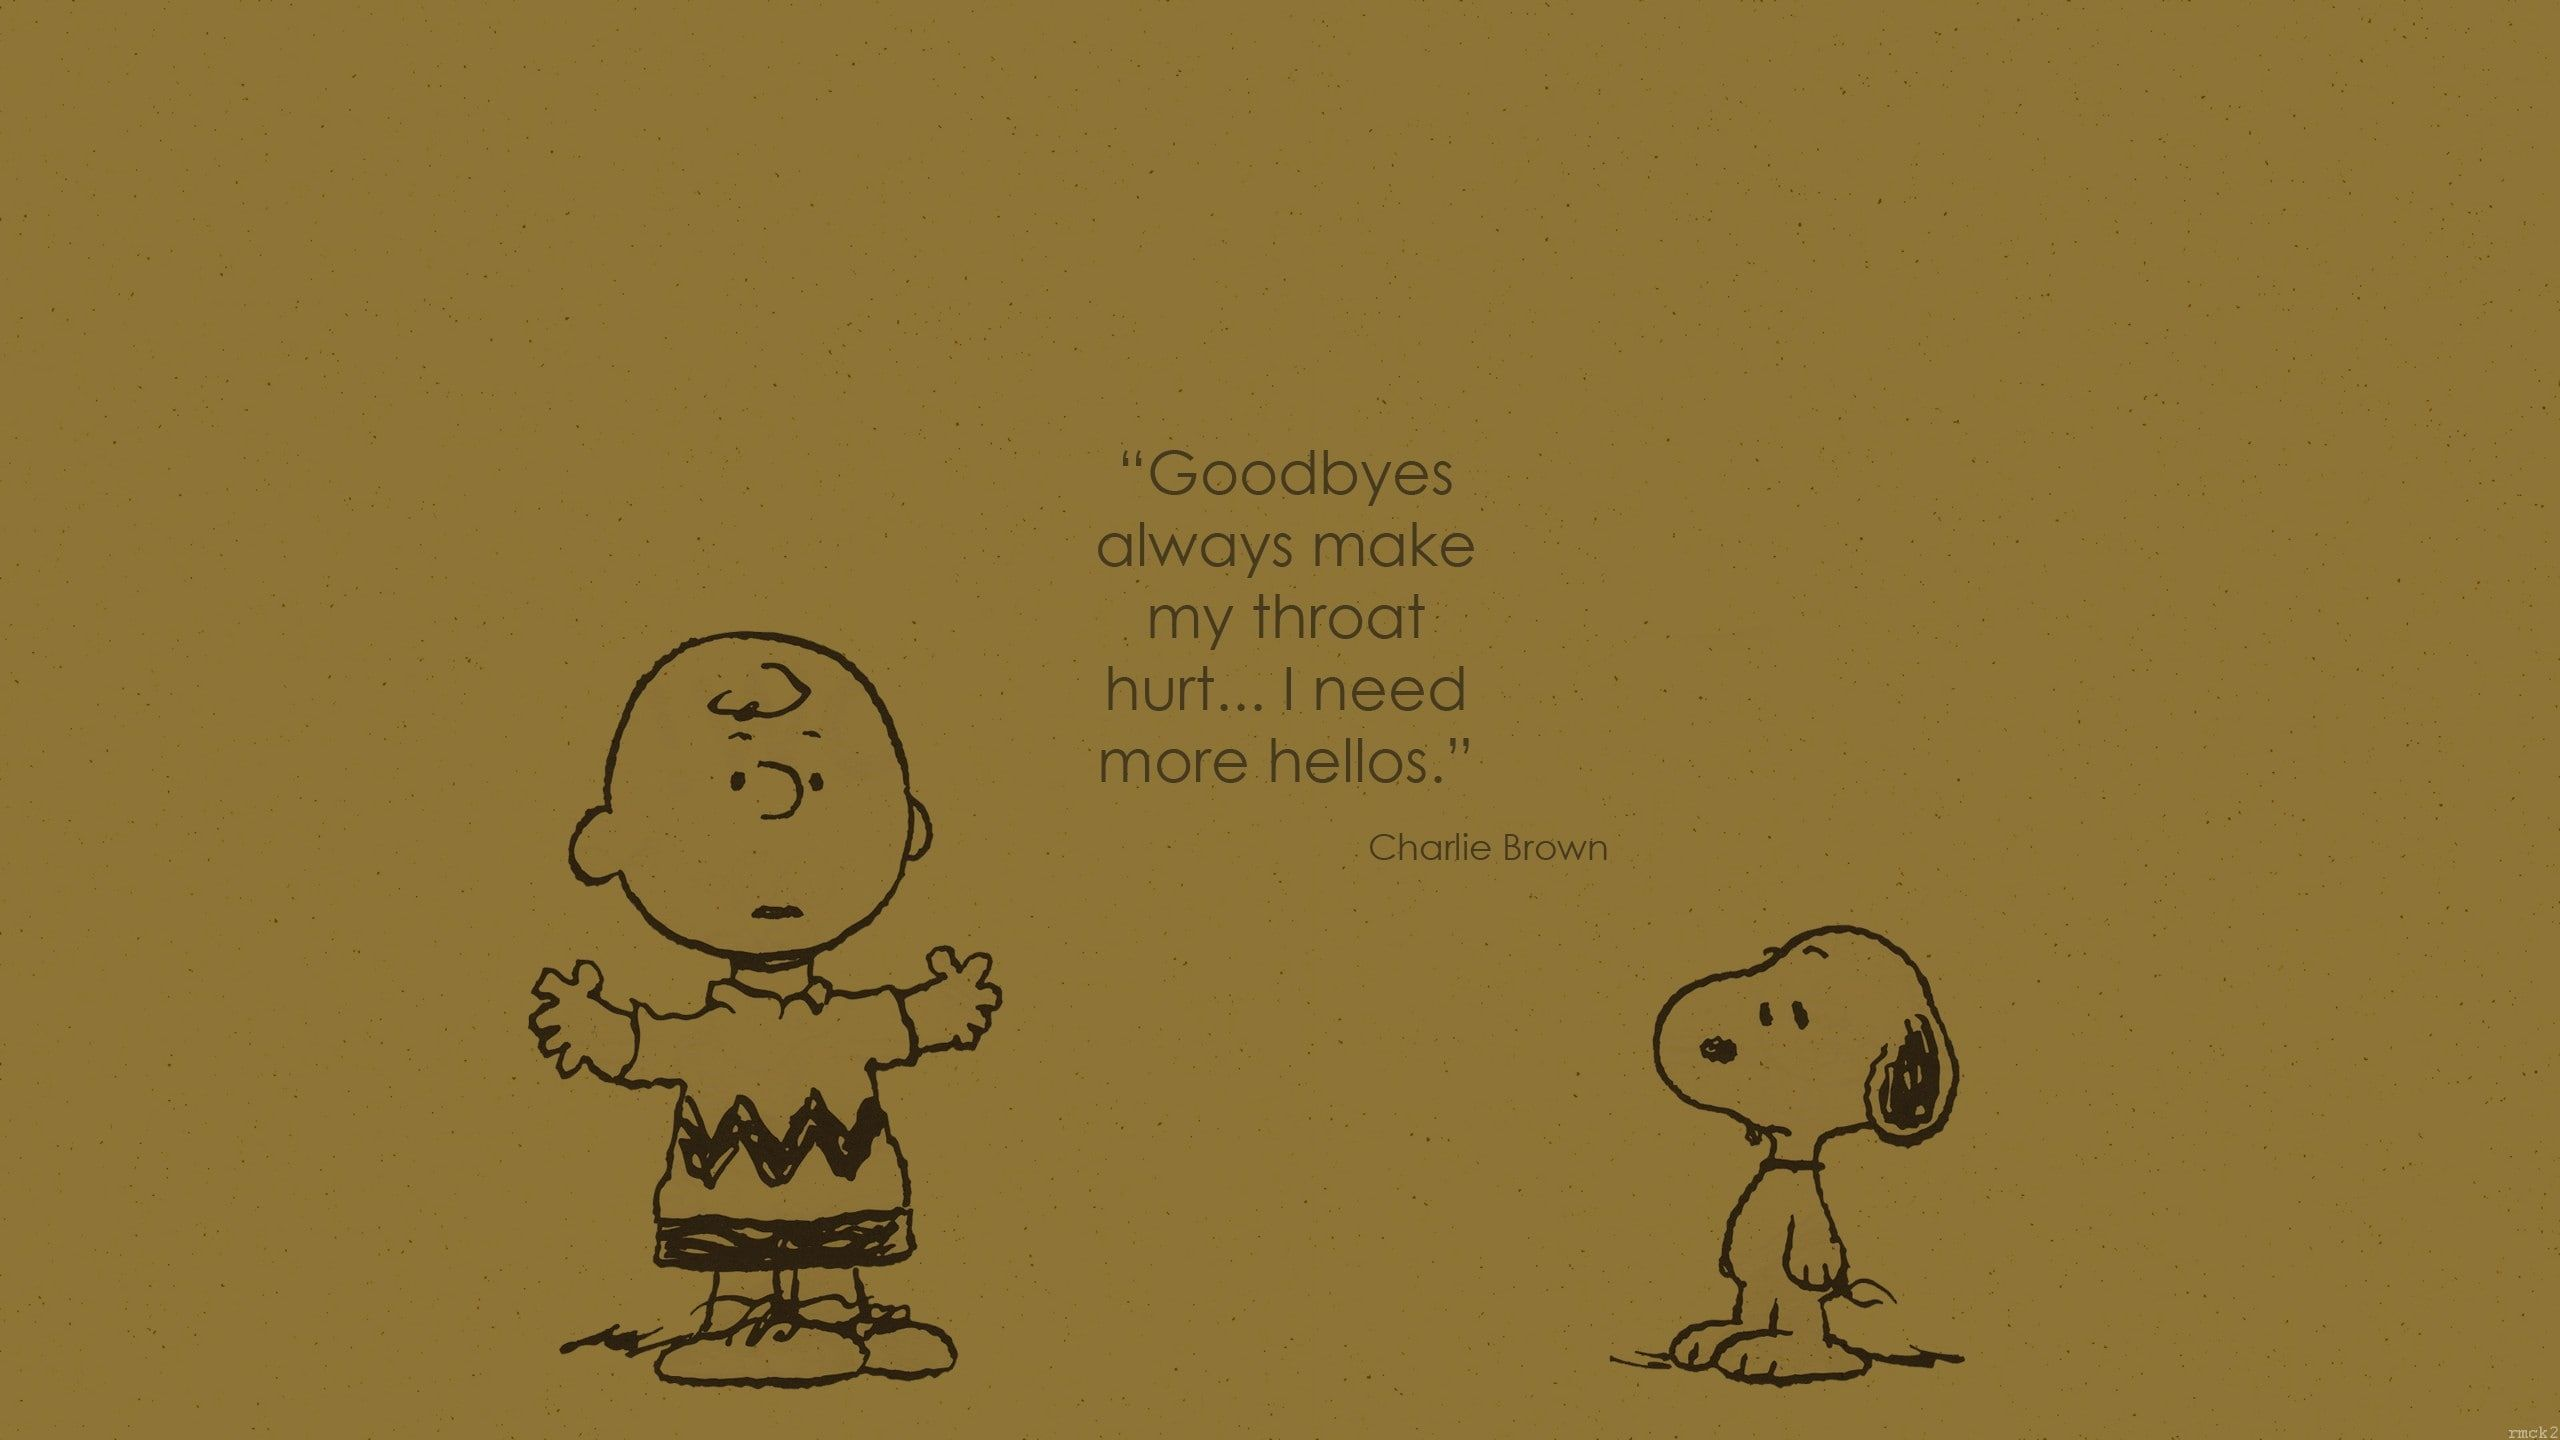 Snoopy Charlie Brown Quote 2k Wallpaper Hdwallpaper Desktop In 2021 Charlie Brown Wallpaper Charlie Brown Snoopy Wallpaper